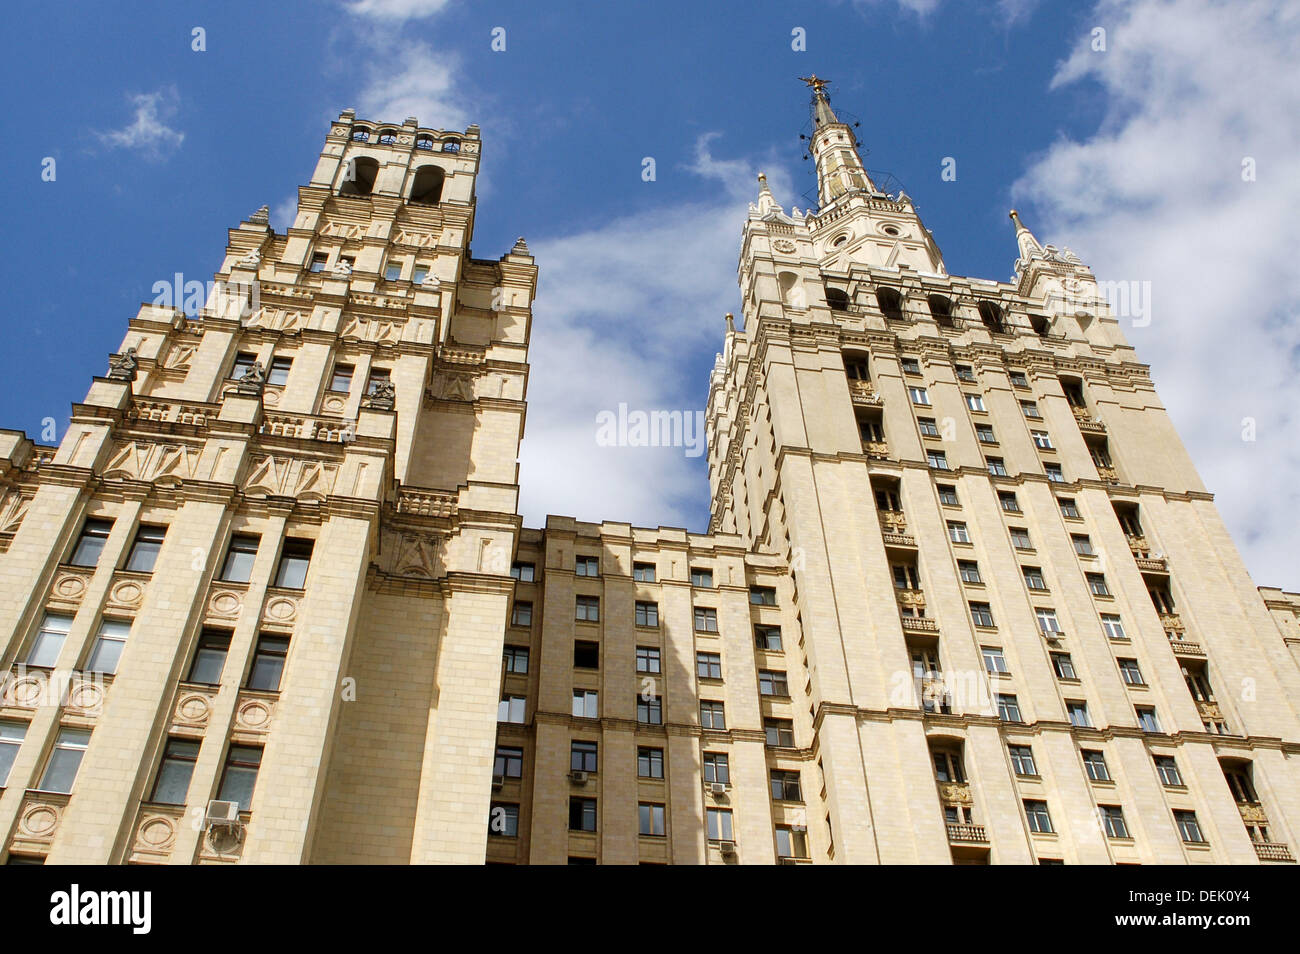 Stalinist architecture, Kudrinskaya Square building, Moscow, Russia - Stock Image